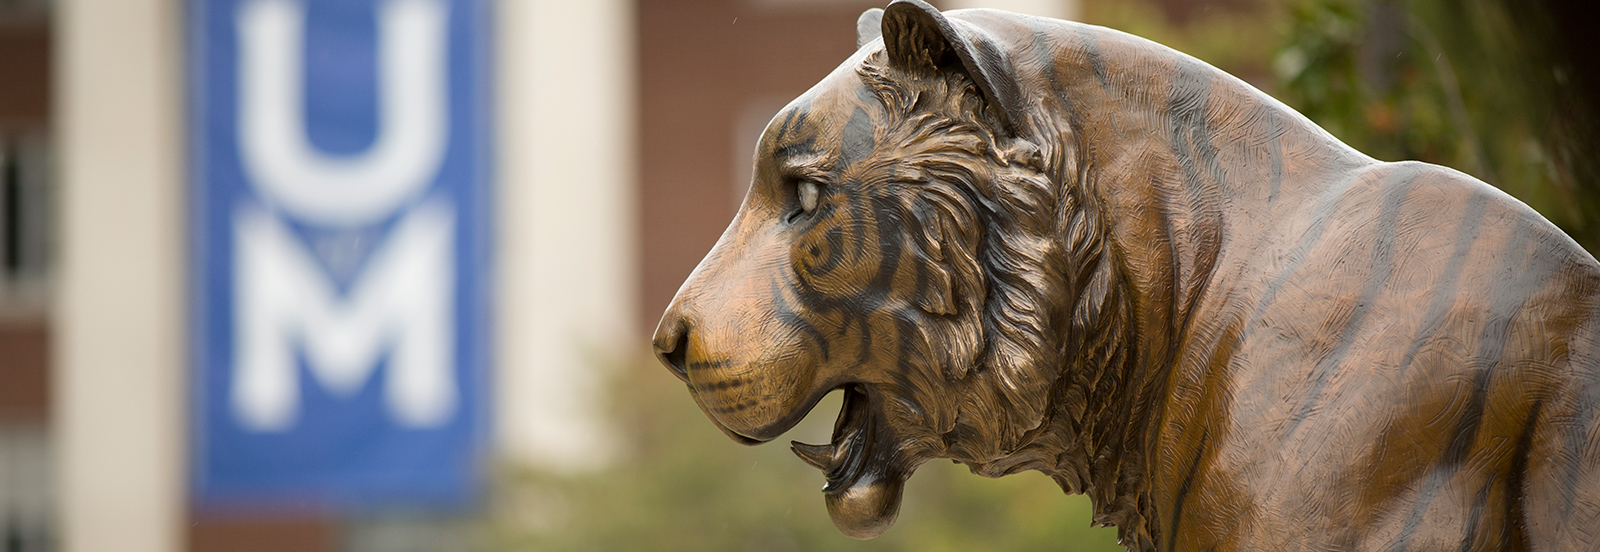 bronze tiger in front of admin